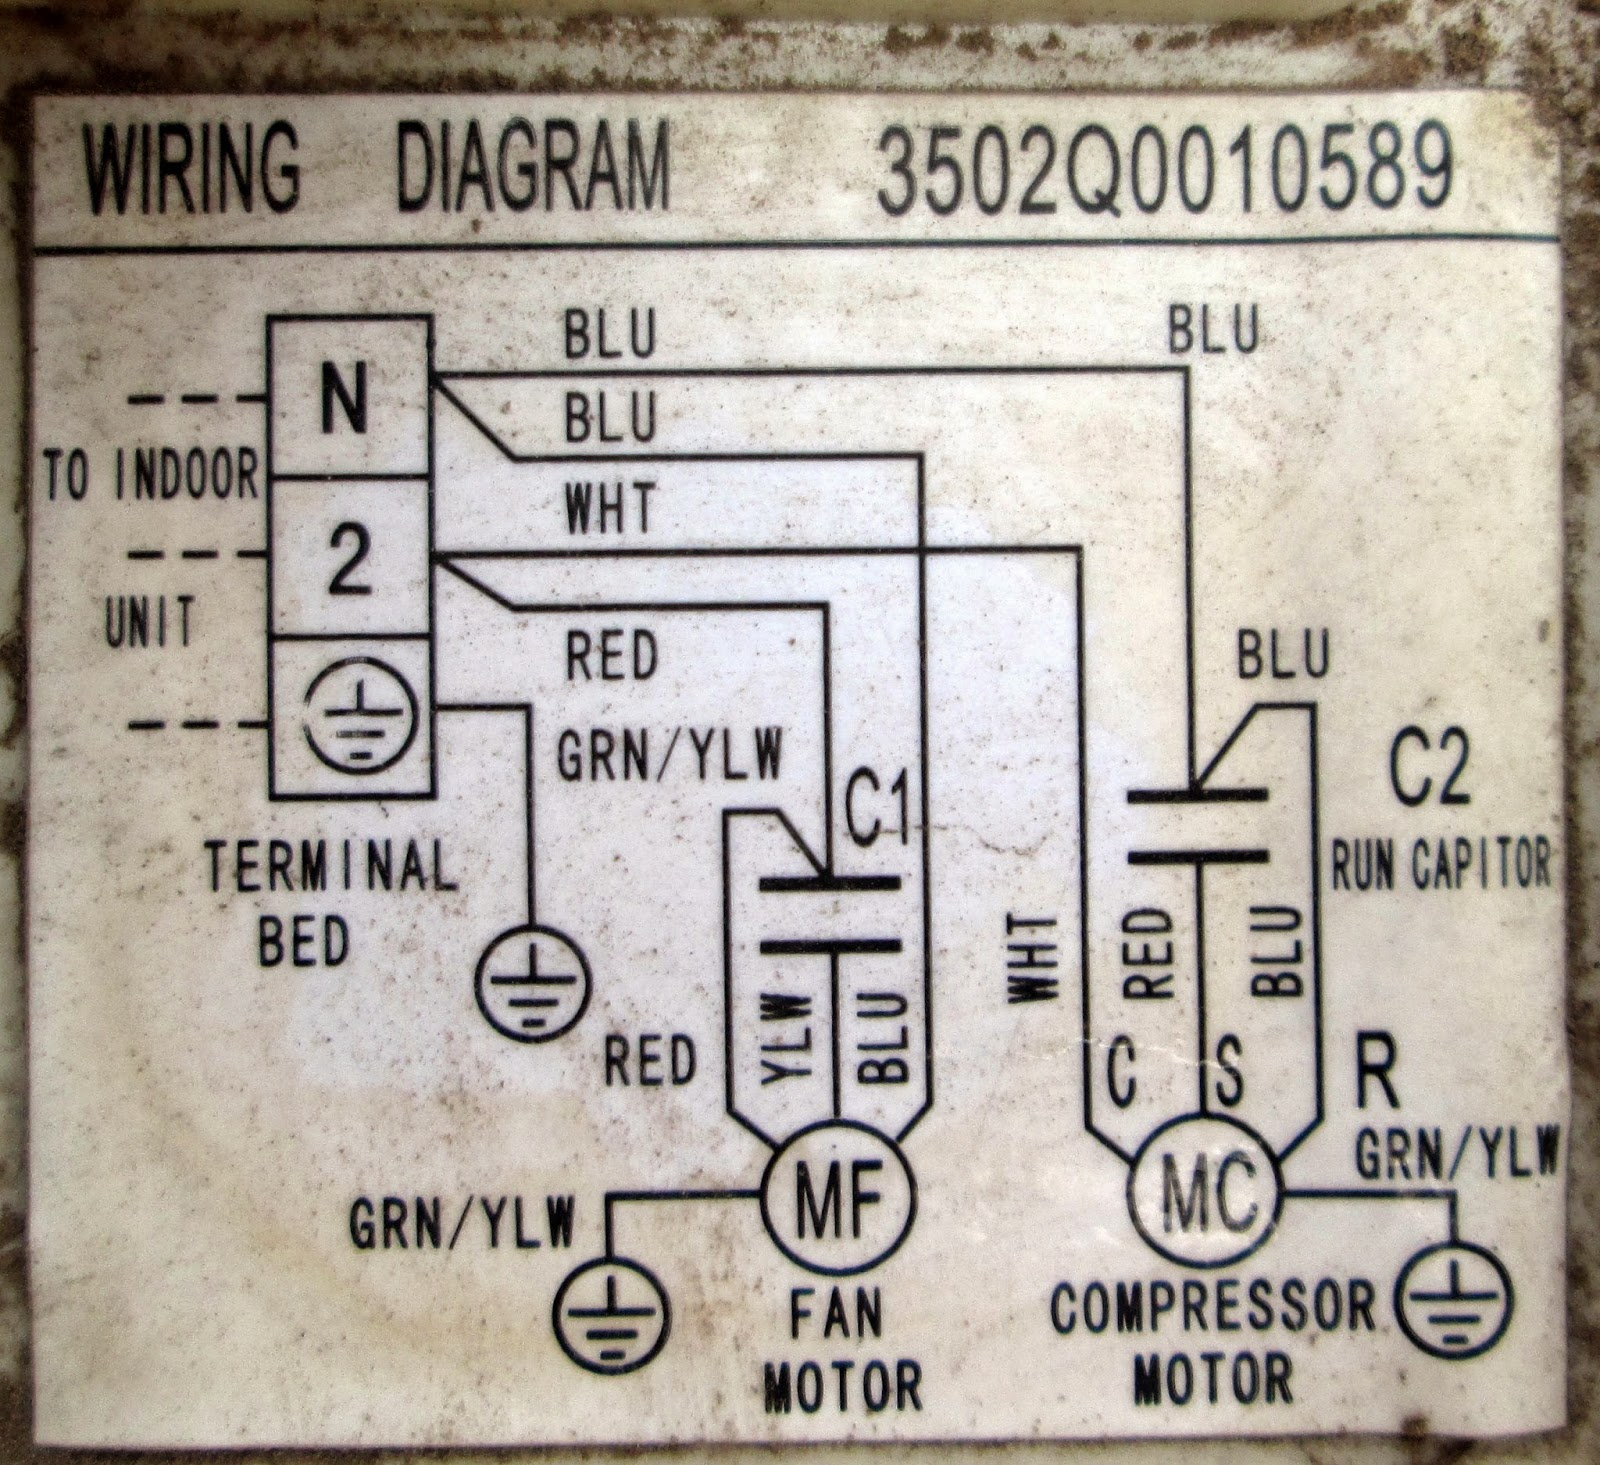 Wiring diagram ac sharp auto wiring diagram today wiring diagram ac sharp wire center u2022 rh sischool co wiring diagram ac sharp air conditioner cheapraybanclubmaster Images